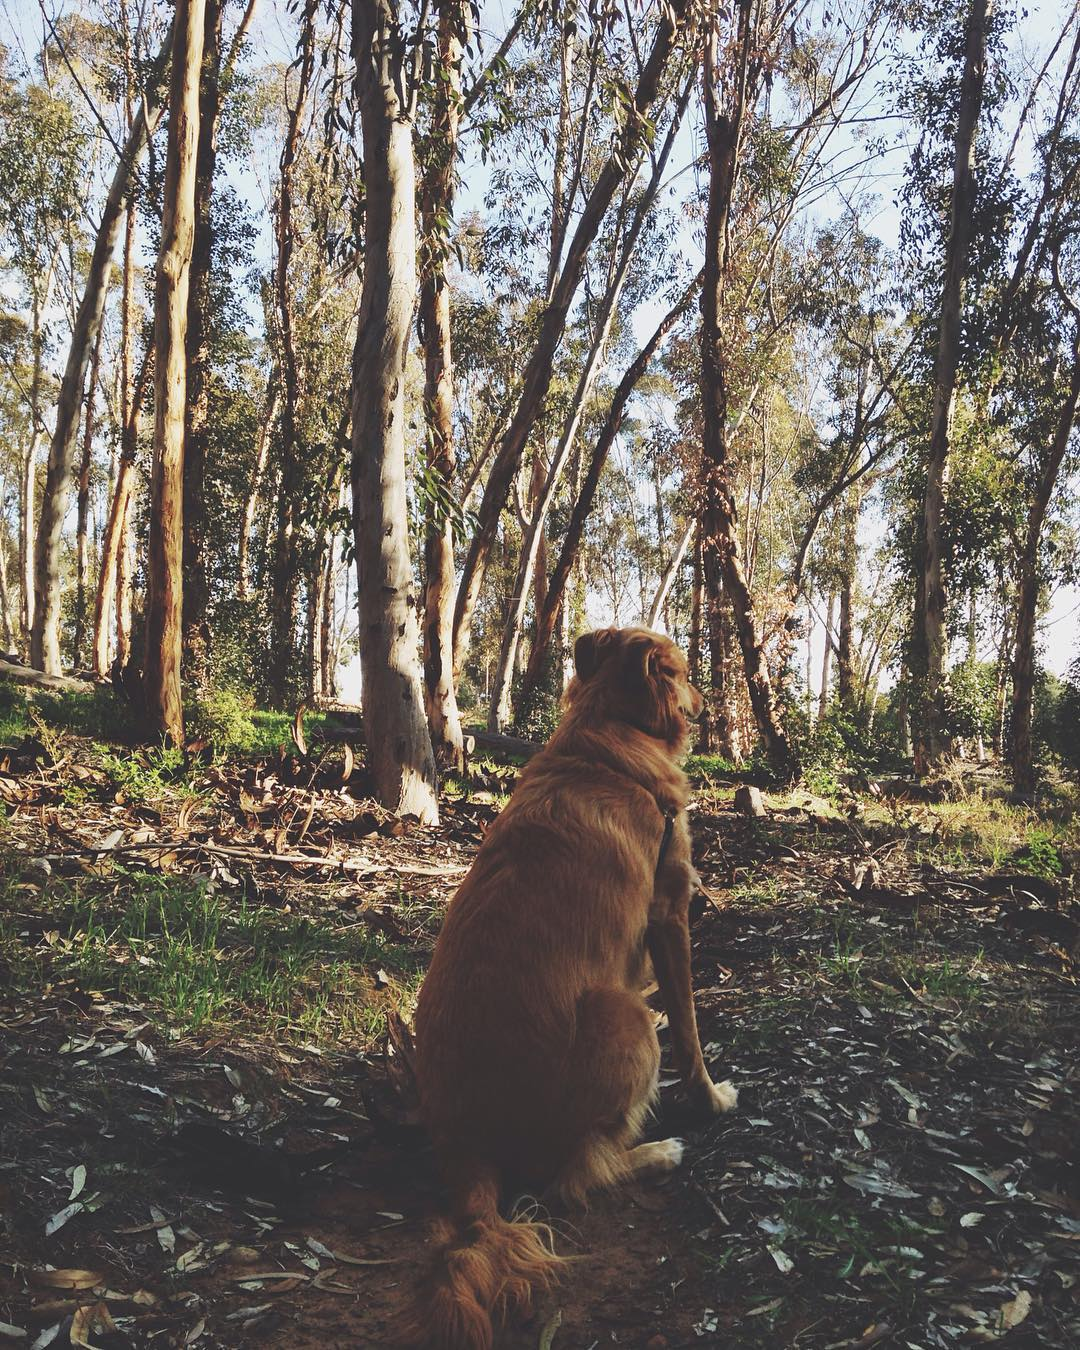 ~ Into the Wild ~  Explore often, adventure consciously.  Byron the Intern finding solitude amongst the trees. ---------------------------------------- #bekindvibes #bekindtribe #consciousadventurer #byrontheintern